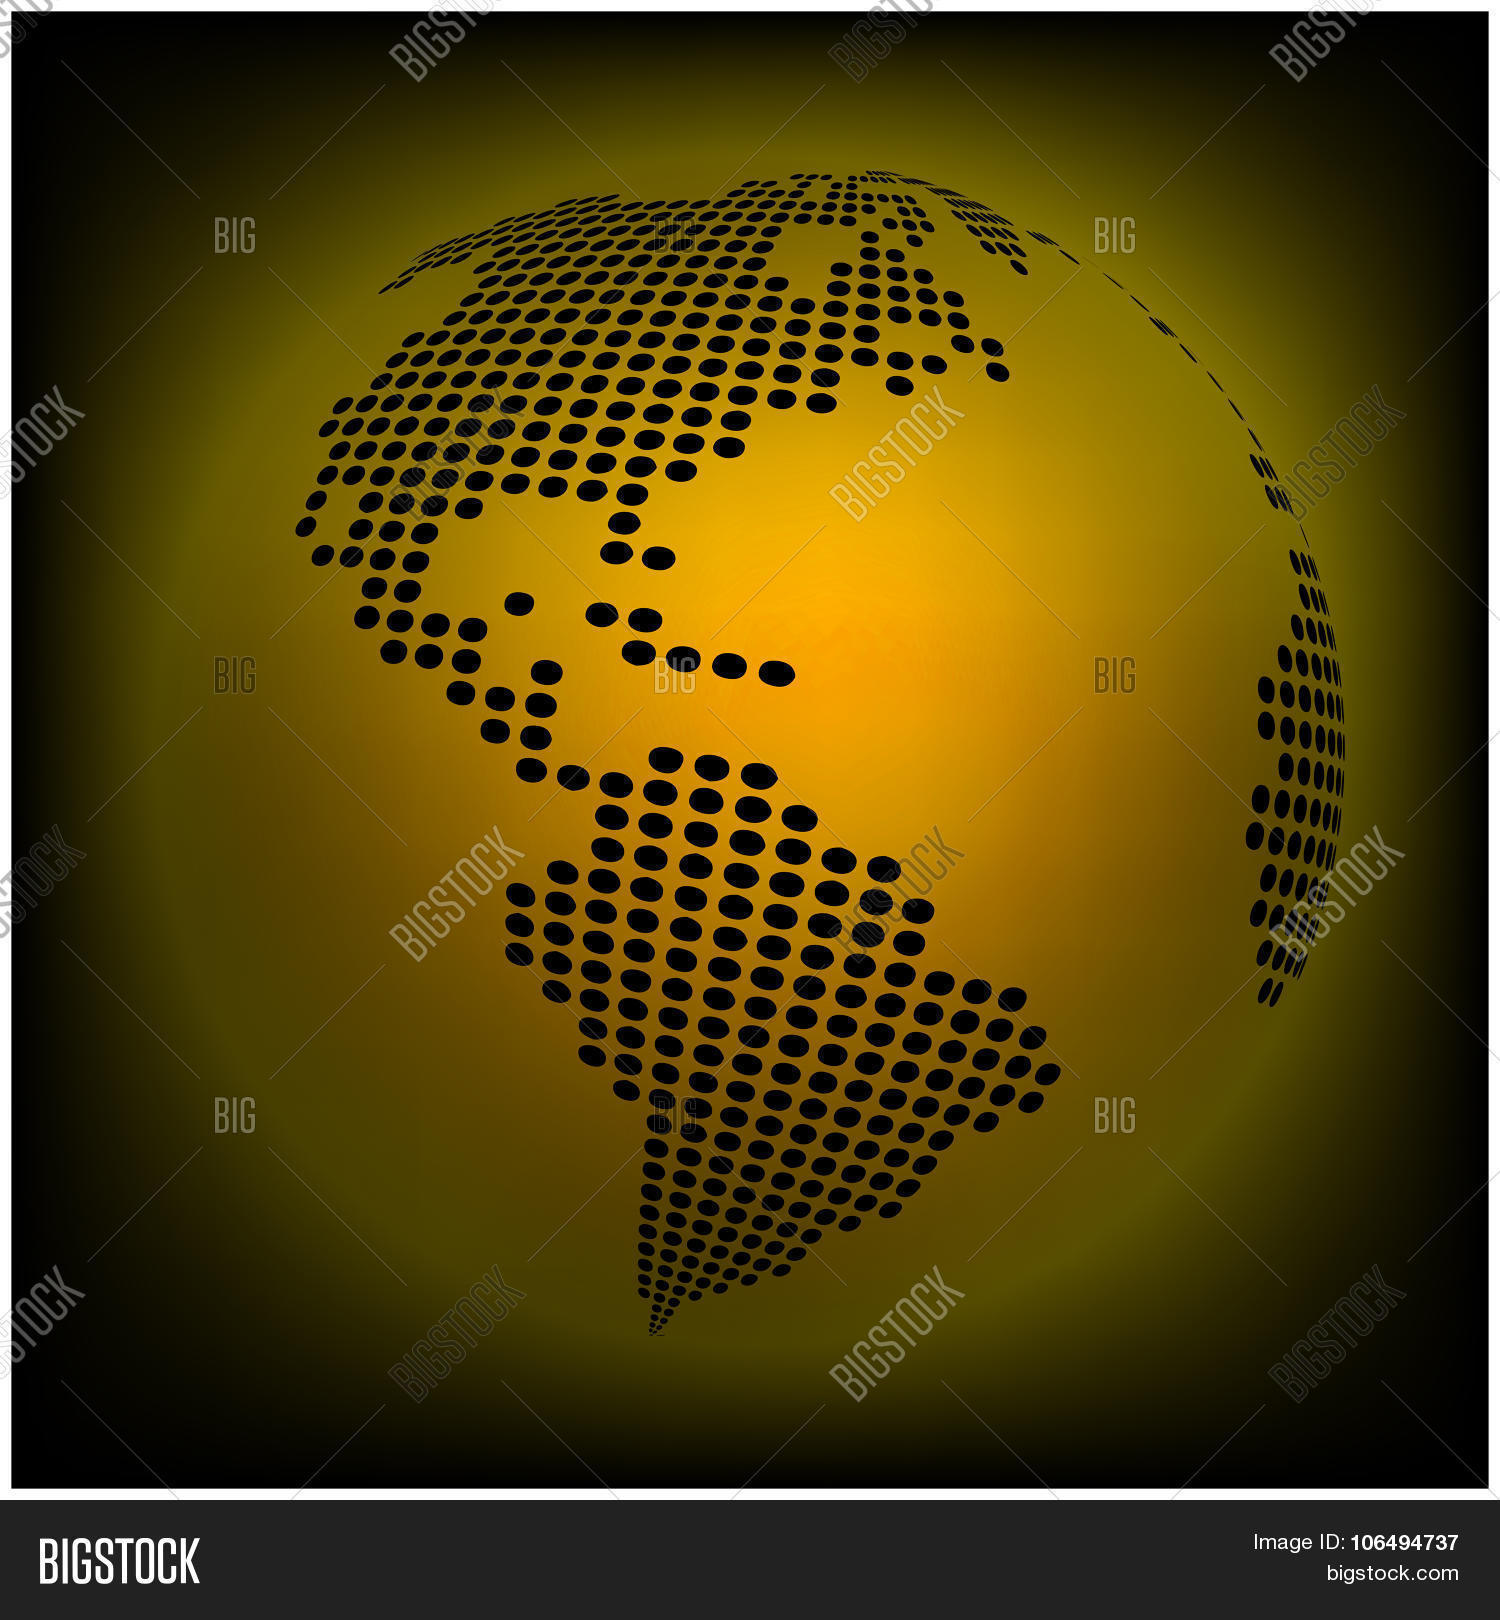 Globe earth world map abstract vector photo bigstock globe earth world map abstract dotted vector background orange yellow wallpaper illustration gumiabroncs Gallery